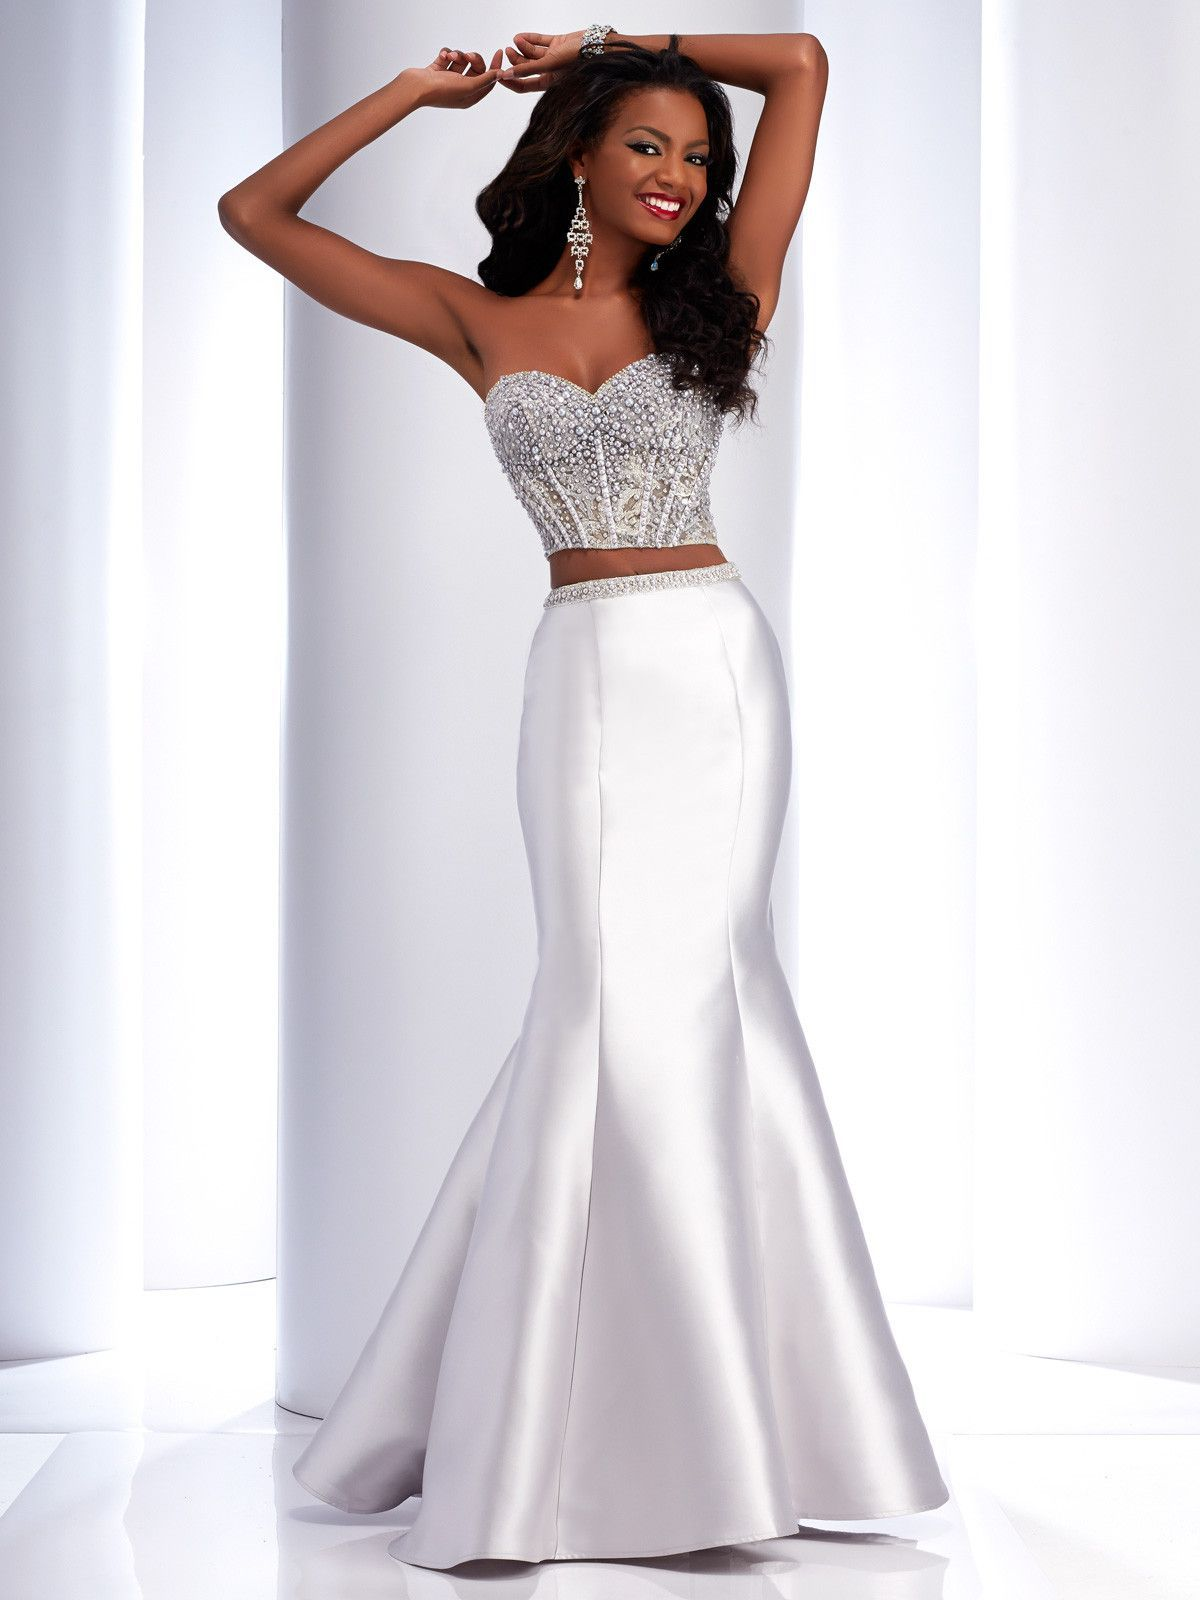 Clarisse 4706 Grey/Silver at Rsvp Prom and Pageant, your source for 2016 Prom and Pageant Dresses!